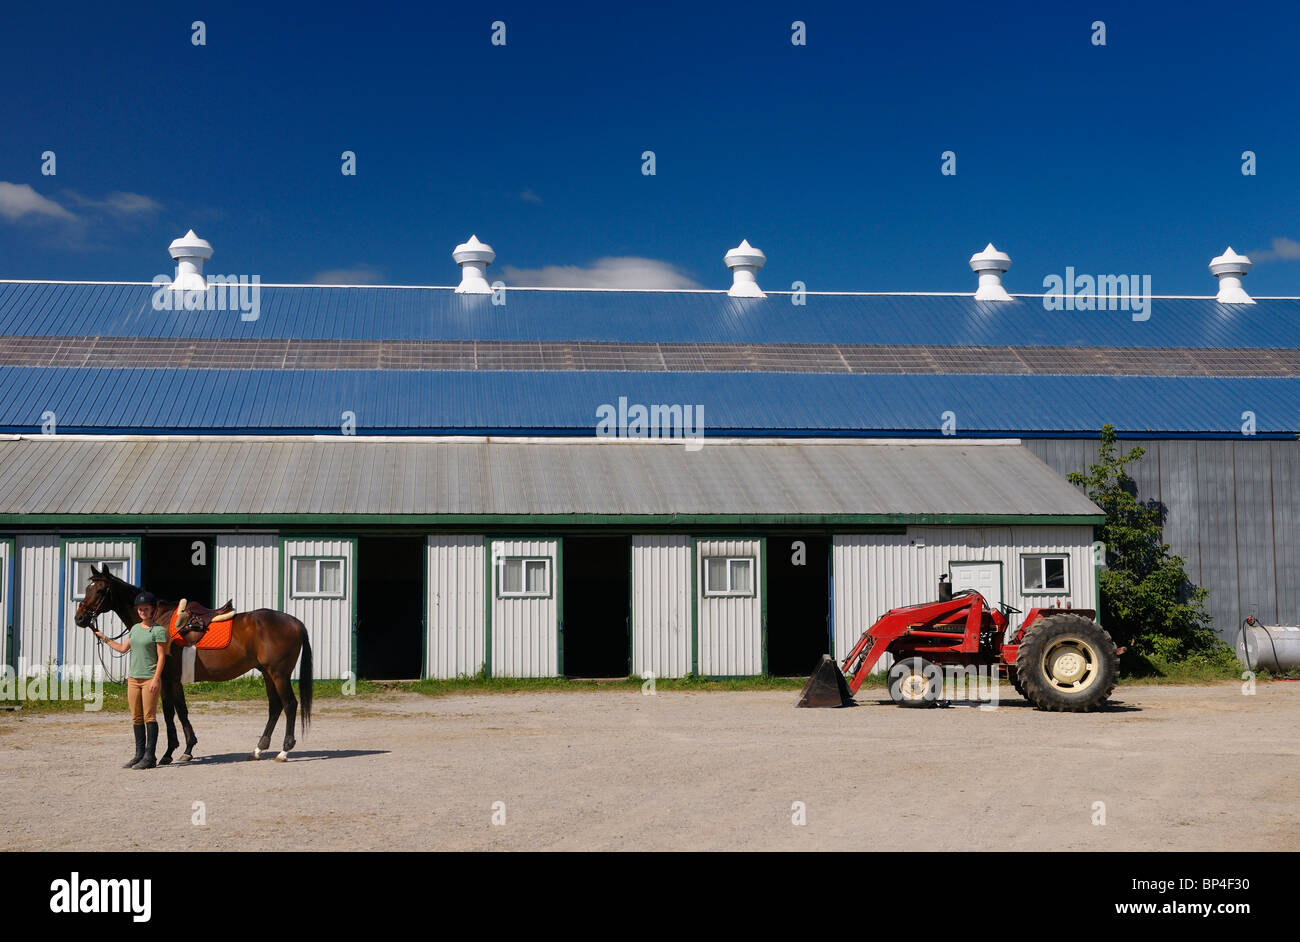 Rider holding her horse at riding stable barn and riding ring arena with tractor in summer Ontario Canada - Stock Image